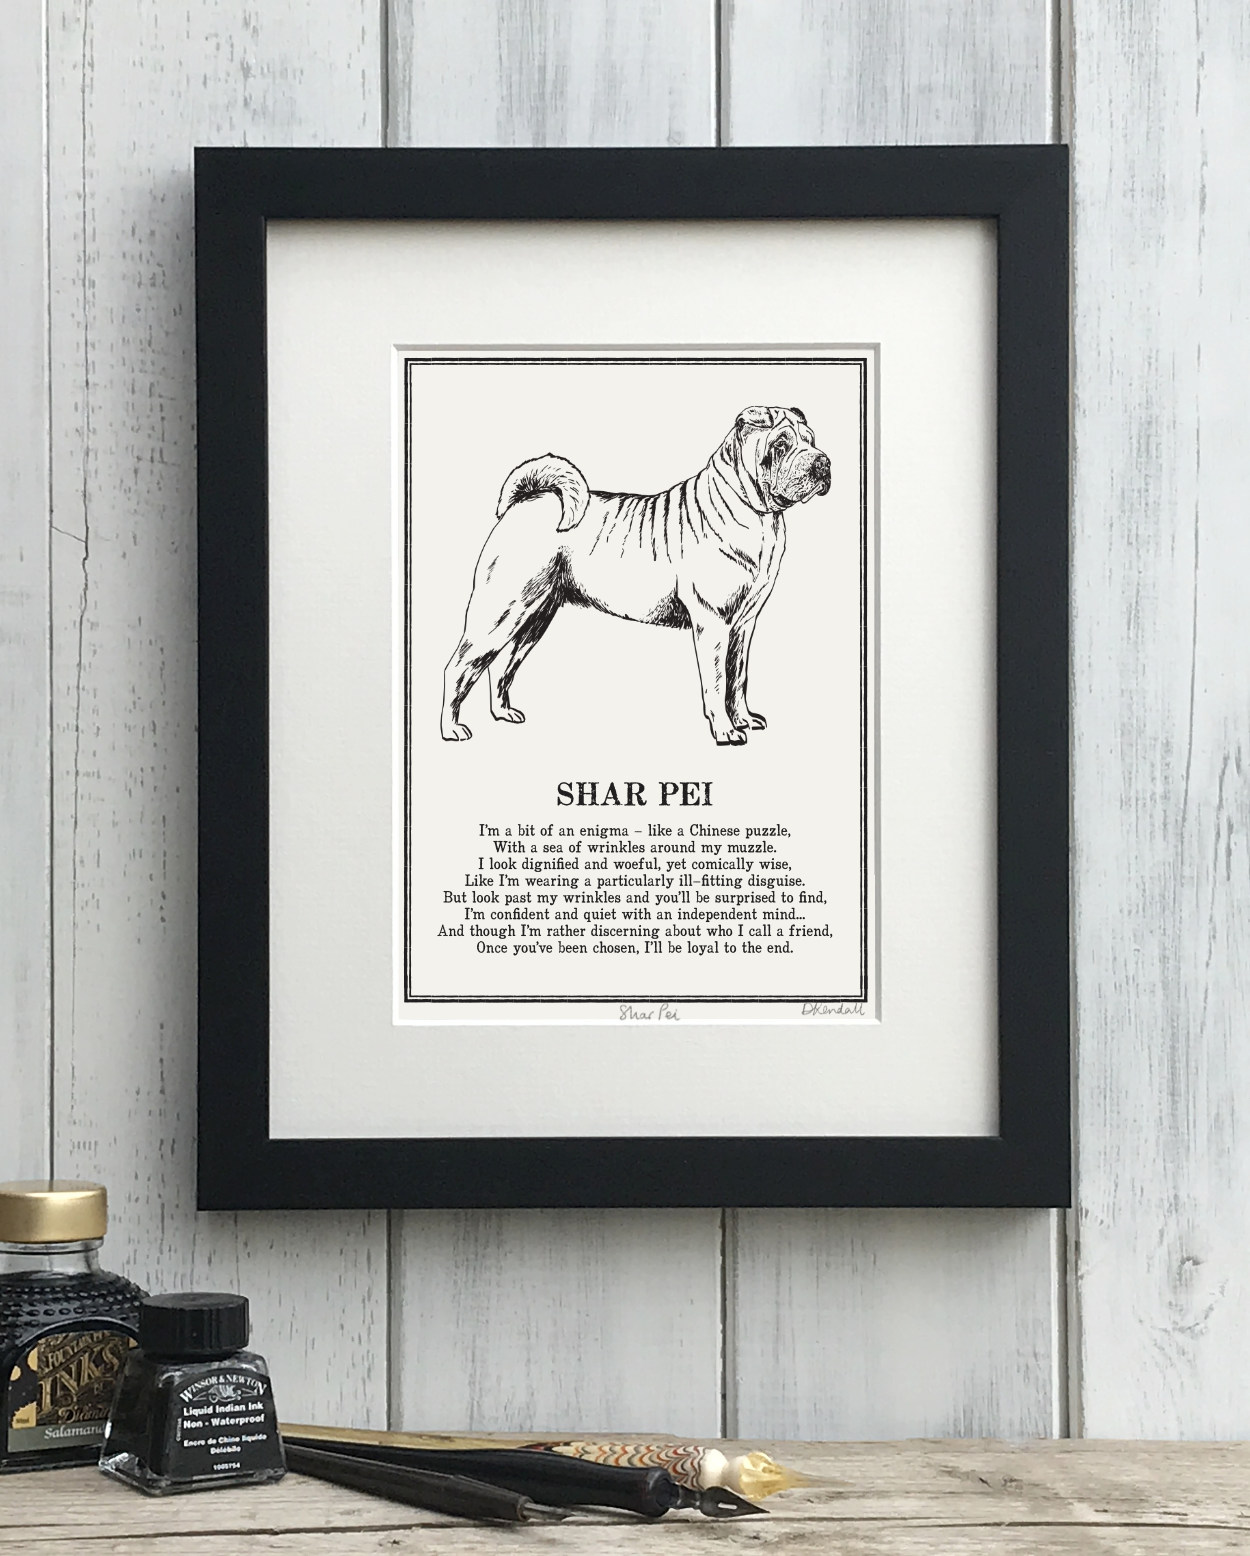 Shar Pei print illustrated poem by The Enlightened Hound